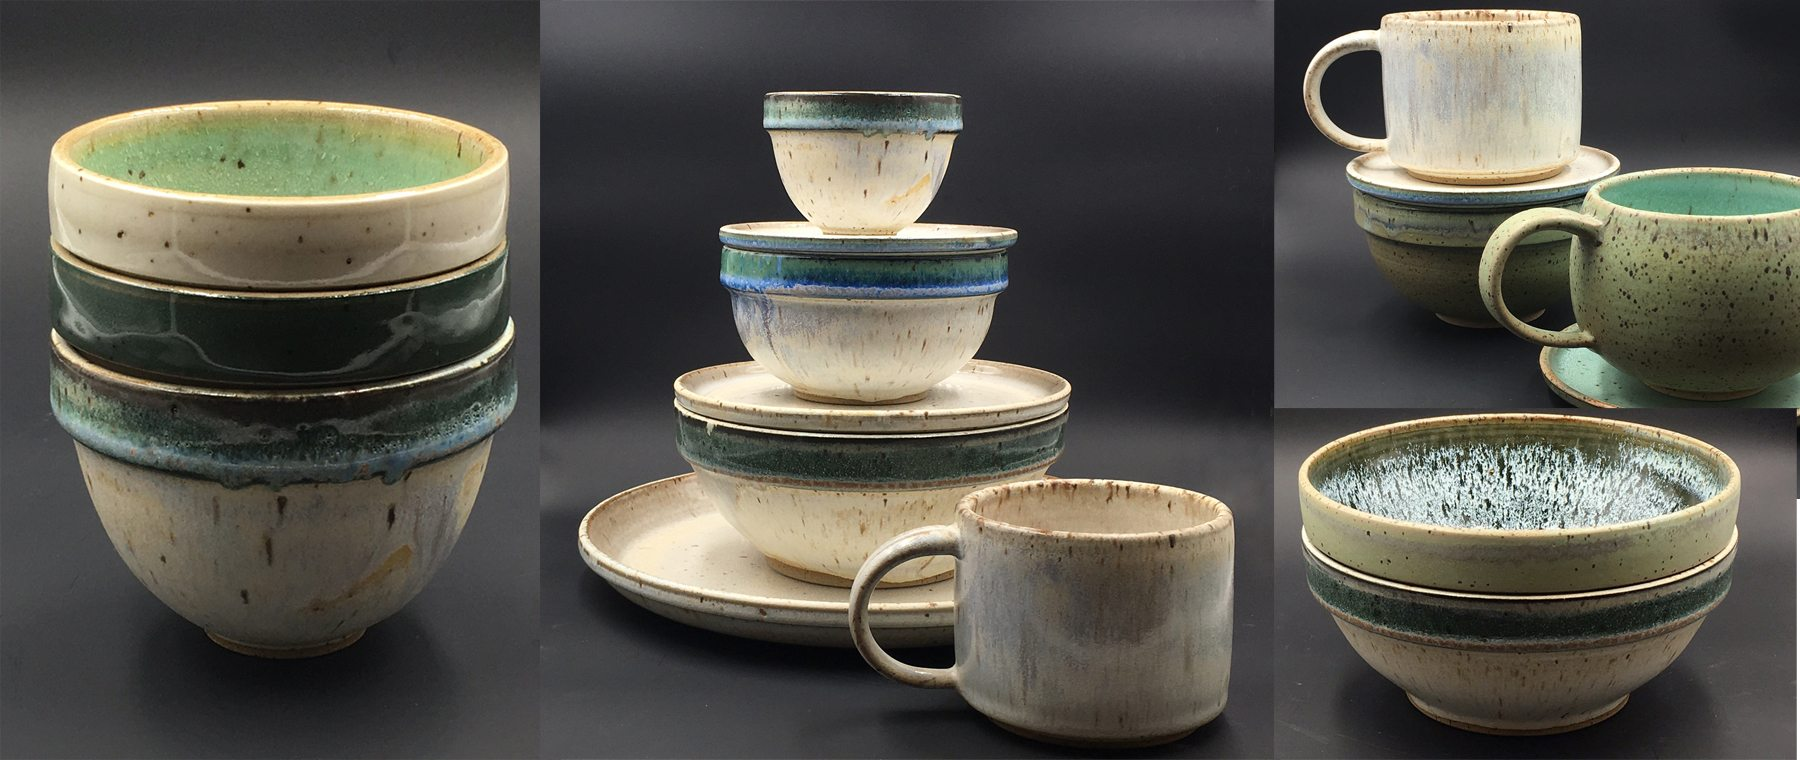 loam clay studio launches restaurant inspired tableware